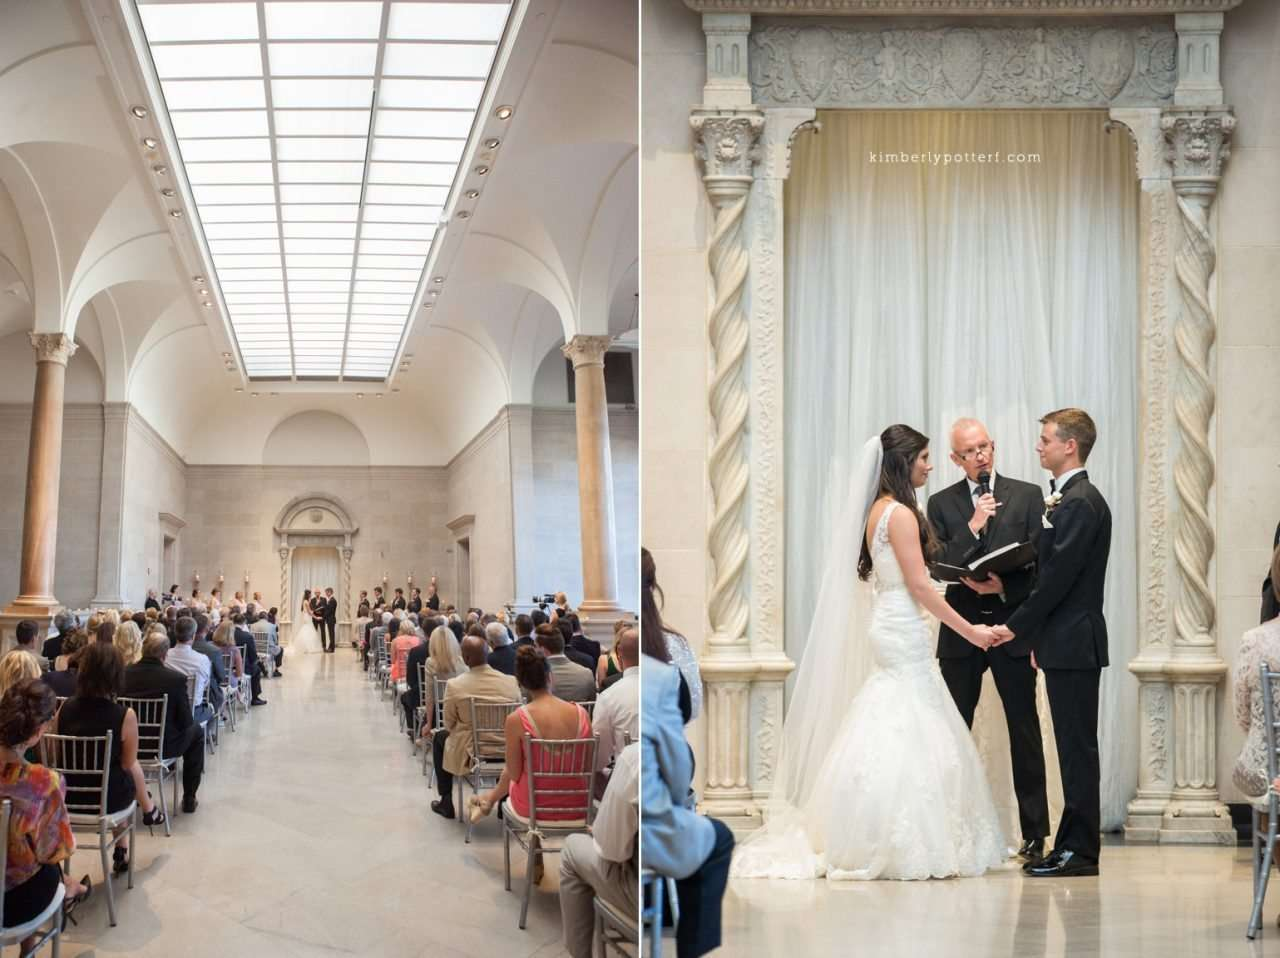 dayton_art_institute_wedding_0030